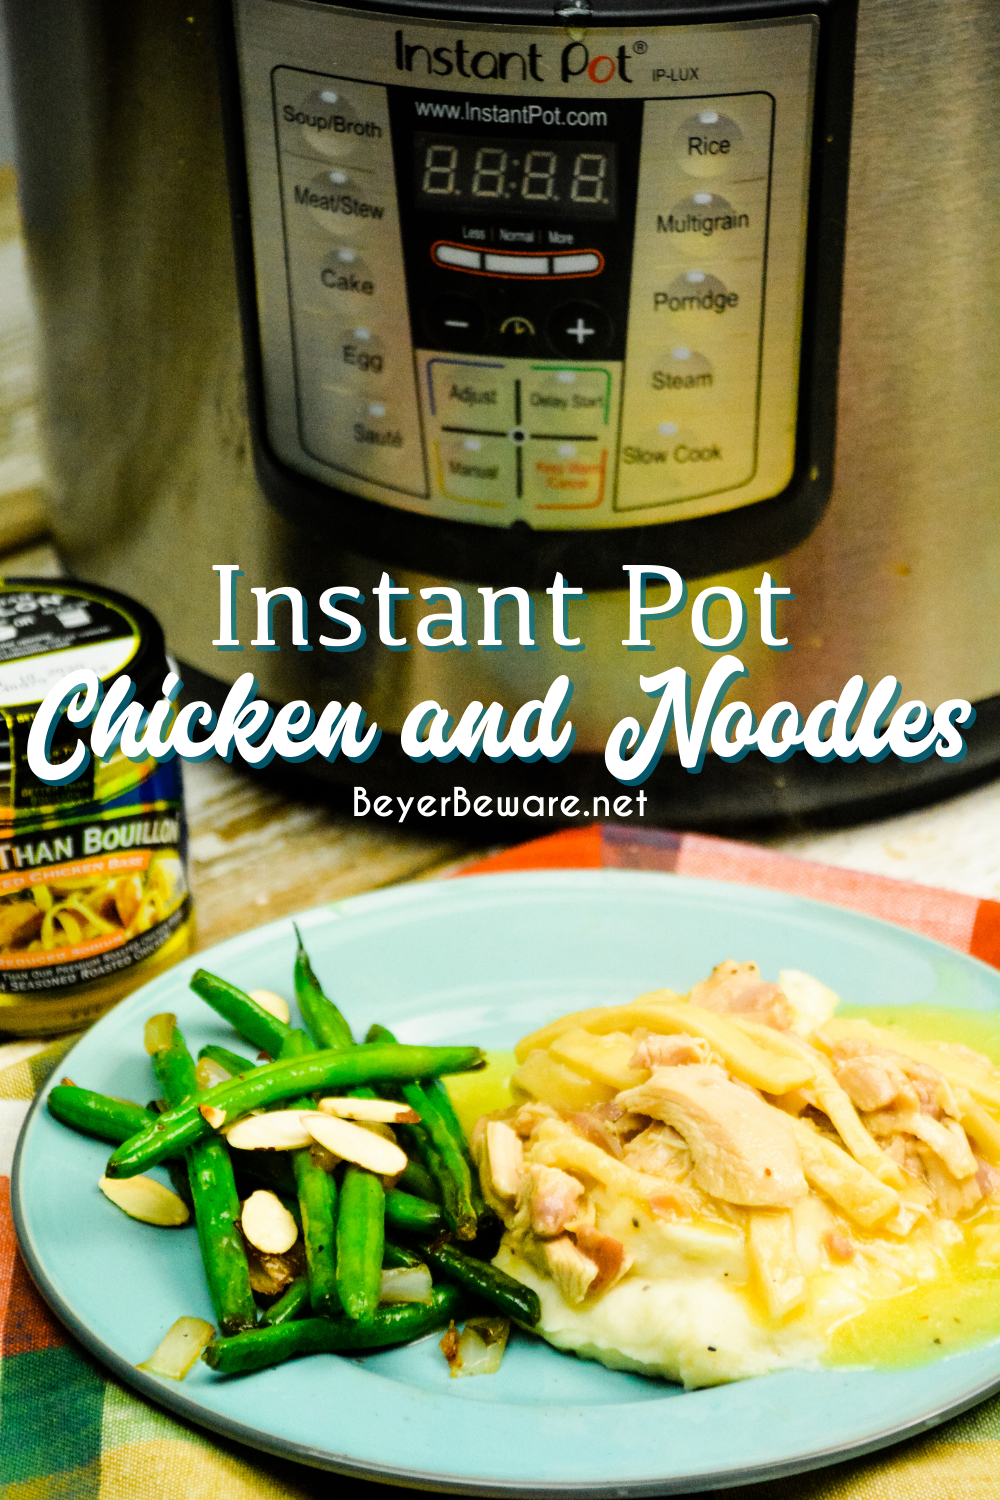 Instant Pot Chicken and Noodles is a quick chicken and noodles recipe for an easy comfort food when you are in a hurry for something for a weeknight dinner.